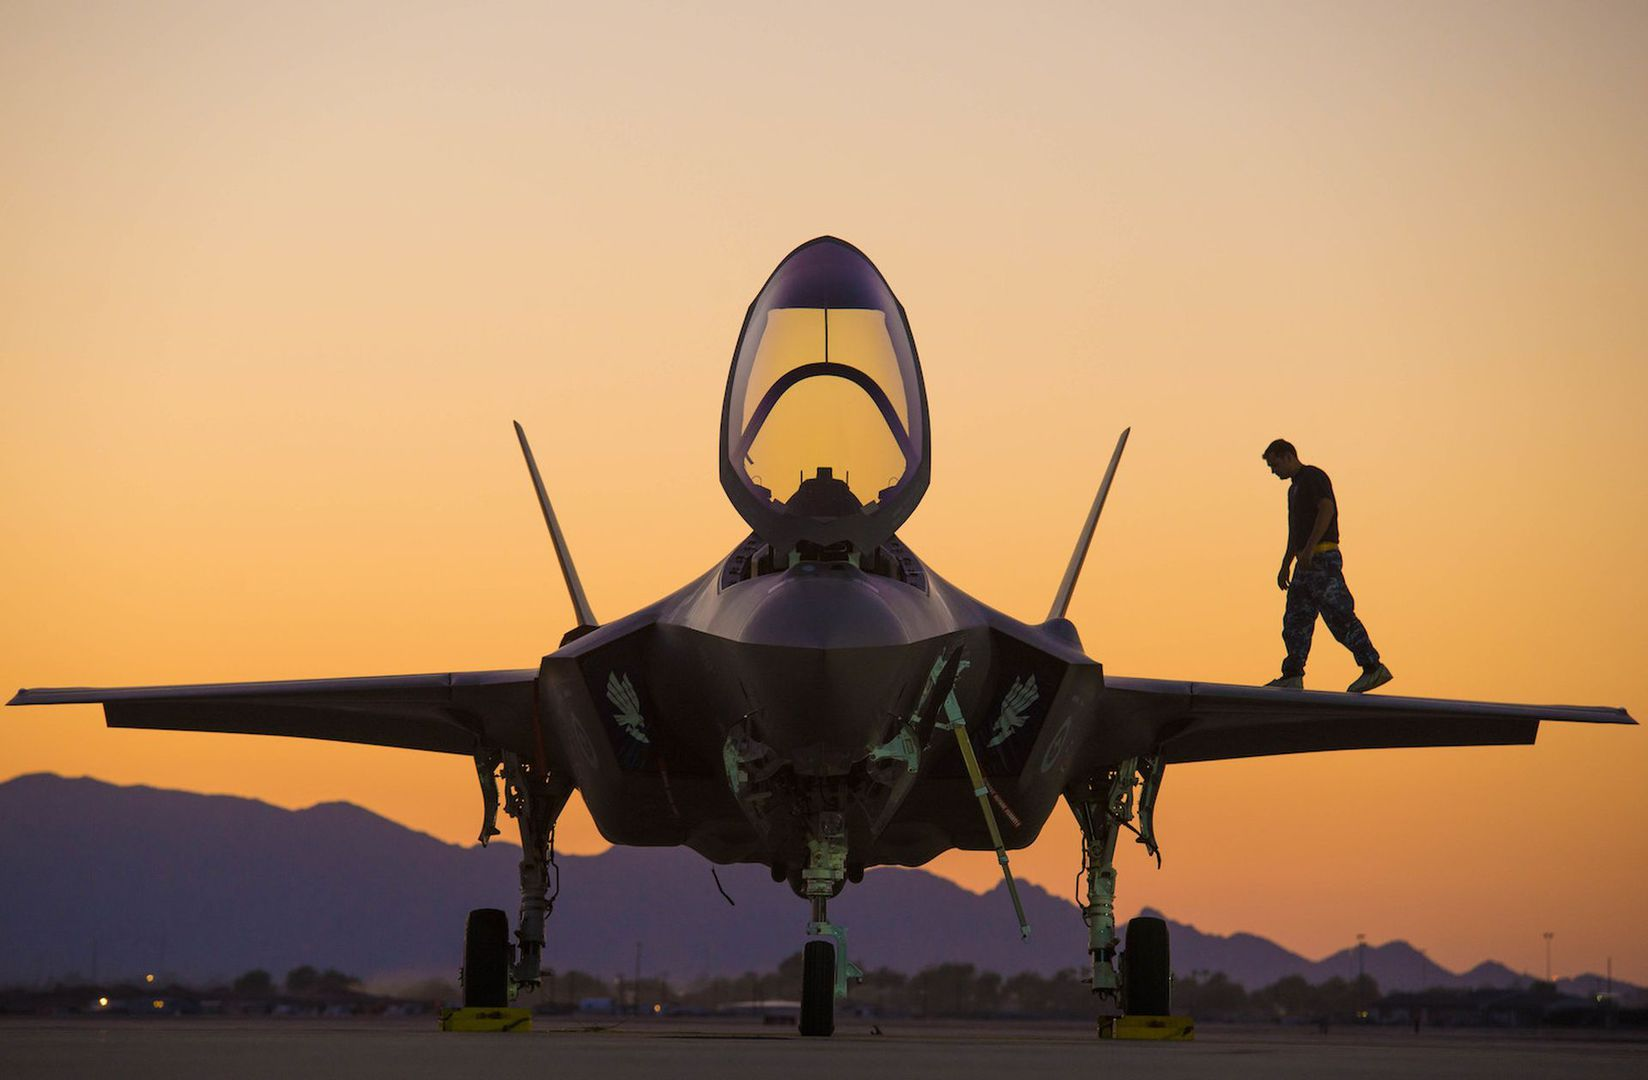 F-35A Lightning II Fighter Jet